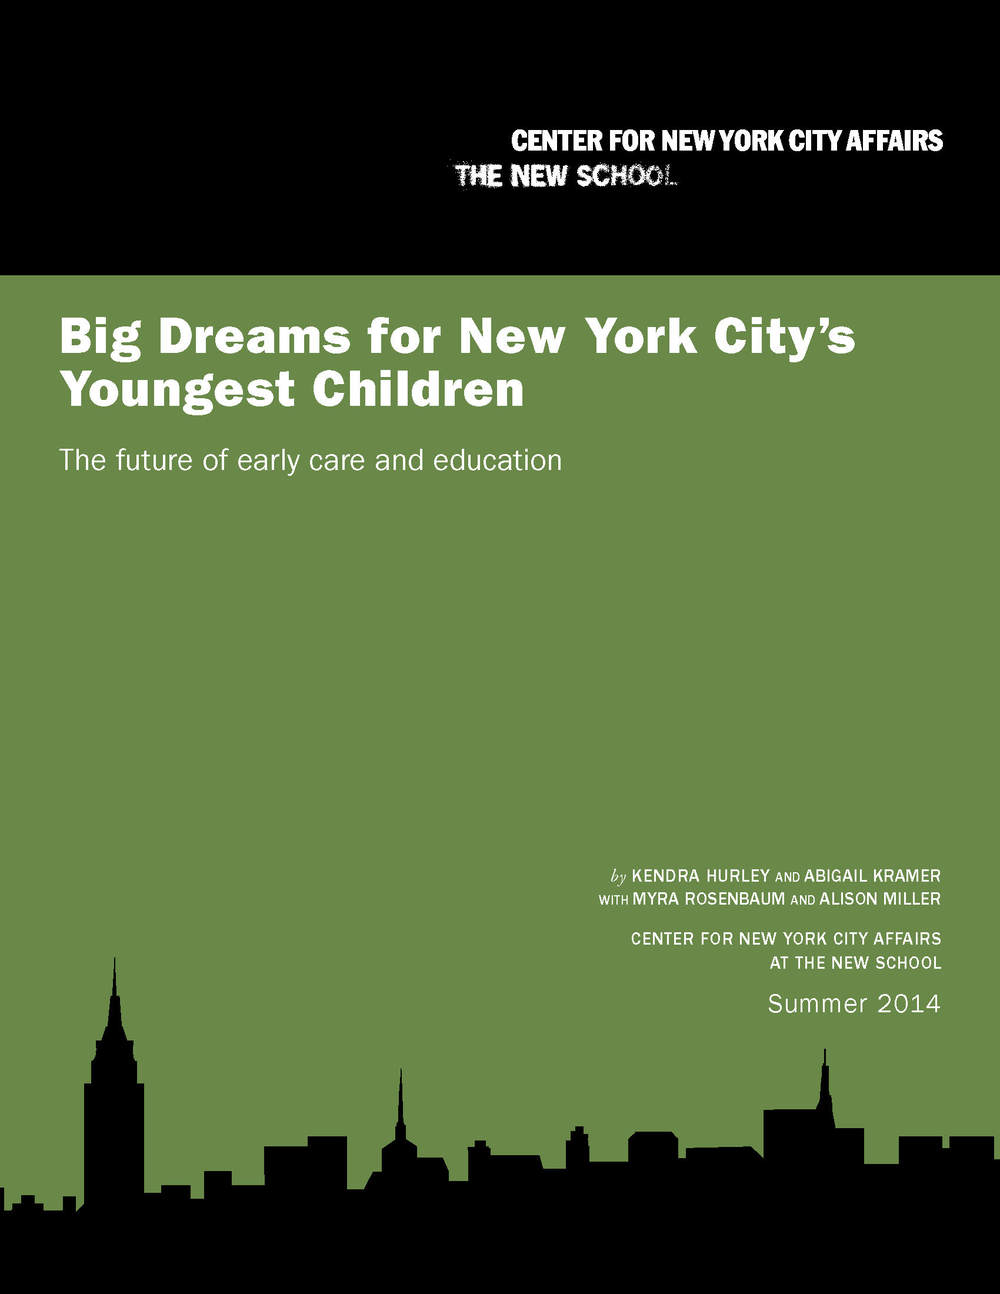 BigDreamsforNYsYoungestChildren_FINAL_001_Page_01.jpg